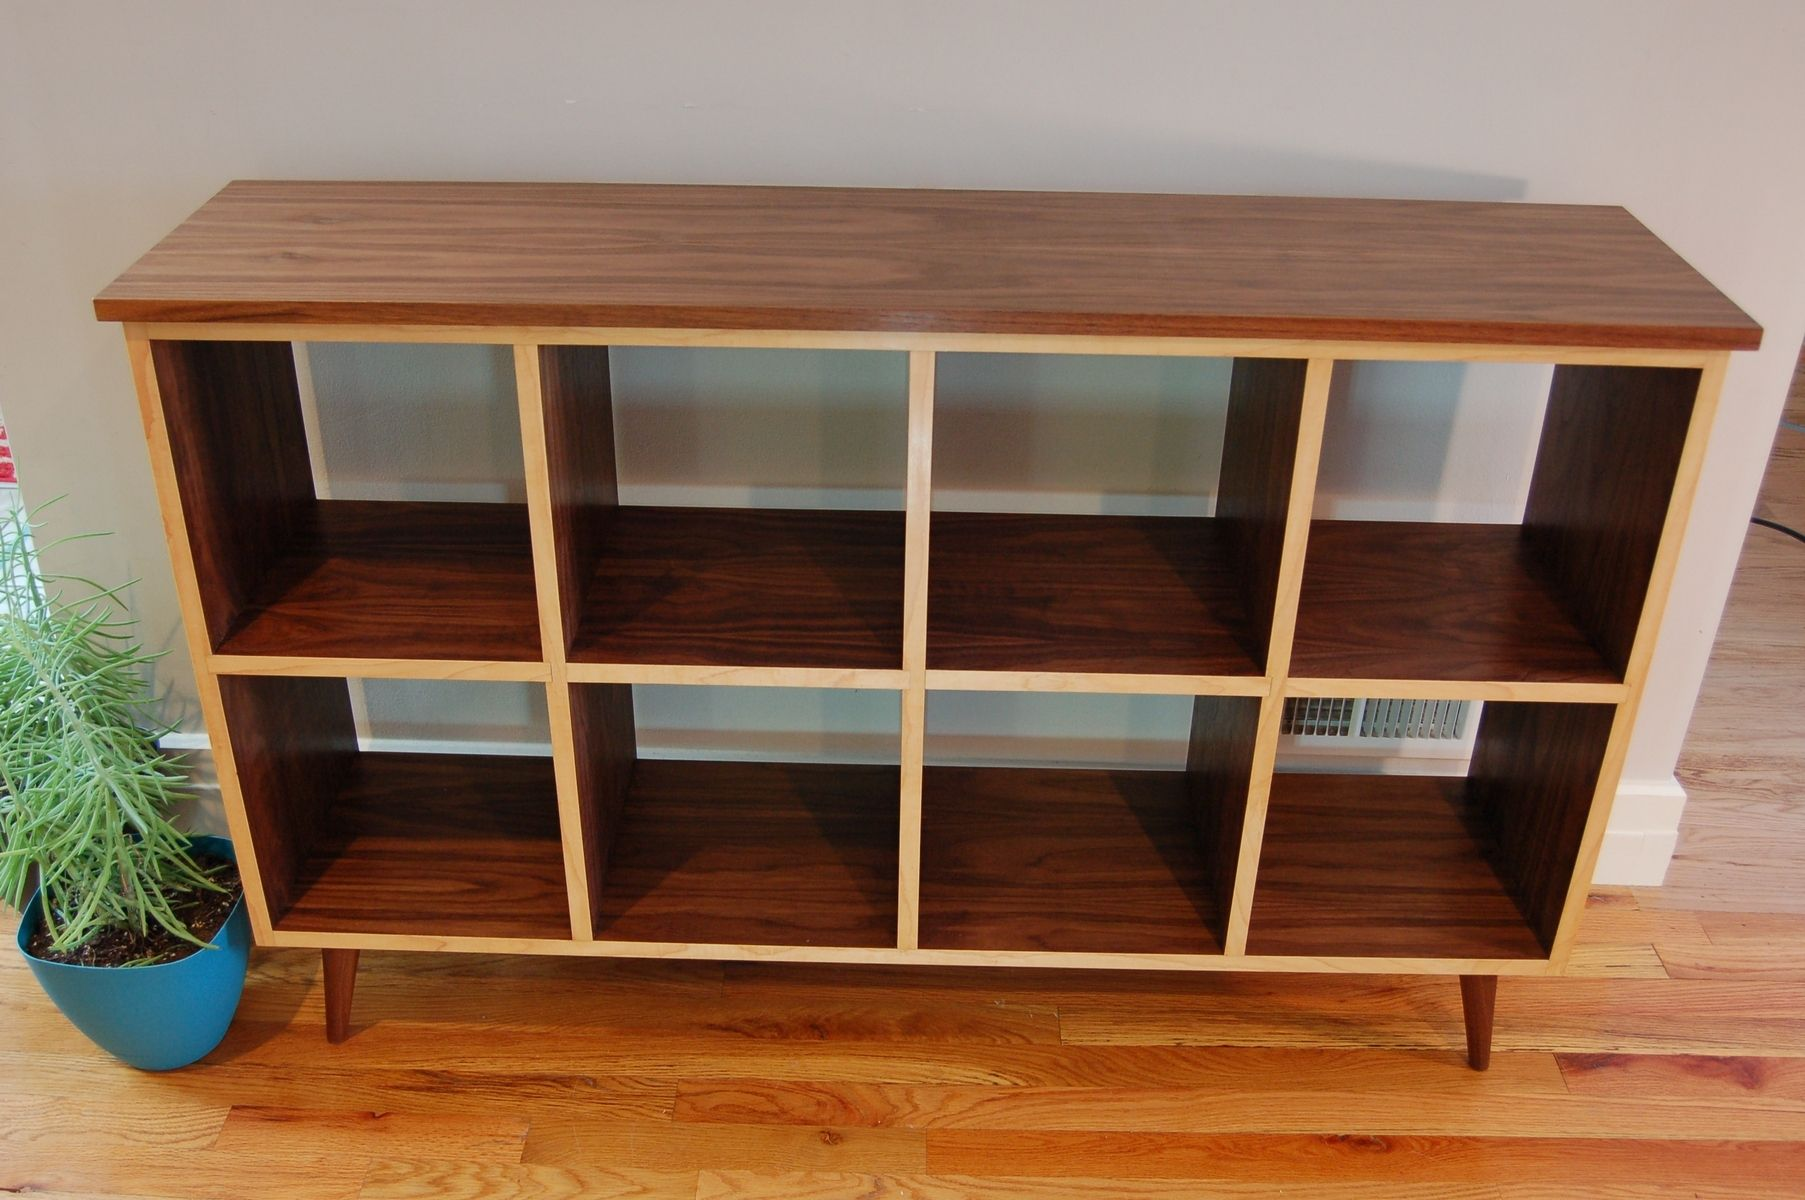 Furnishings Walnut Bookcase With Maple Edge Banding